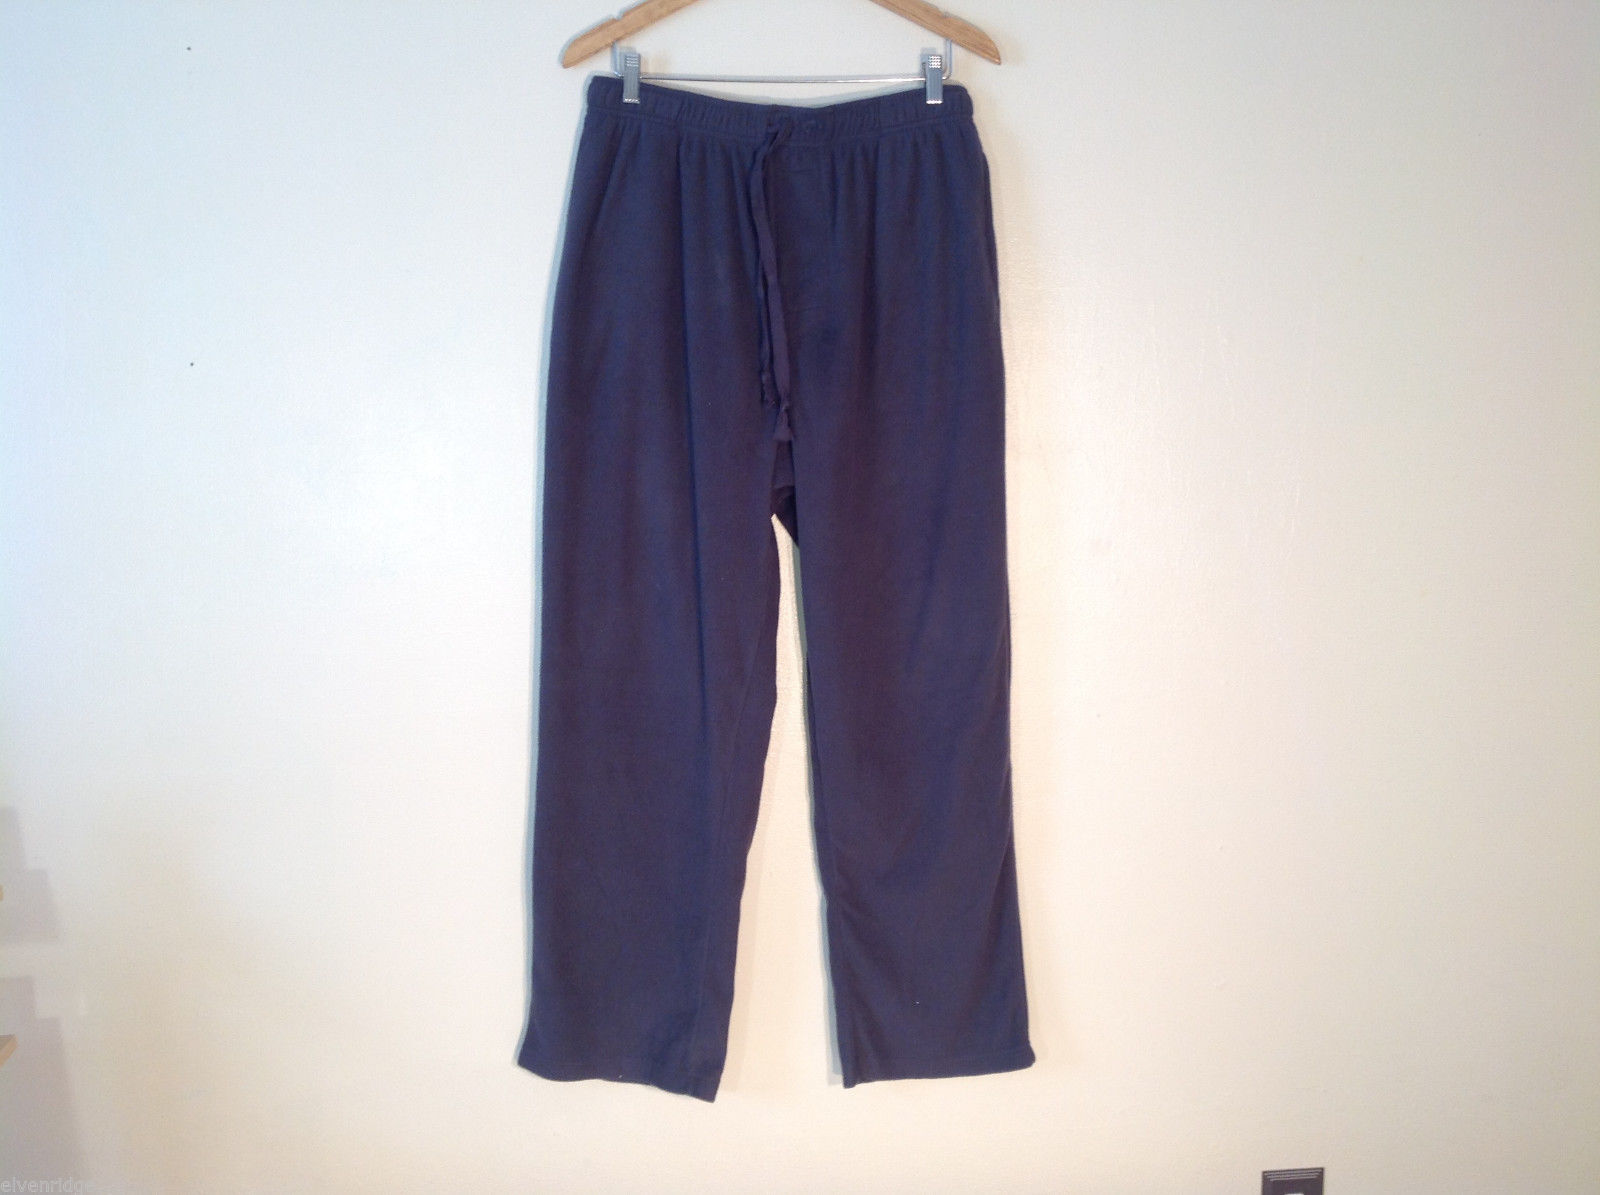 Mens Croft and Barrow dark grat sweatpants Size L